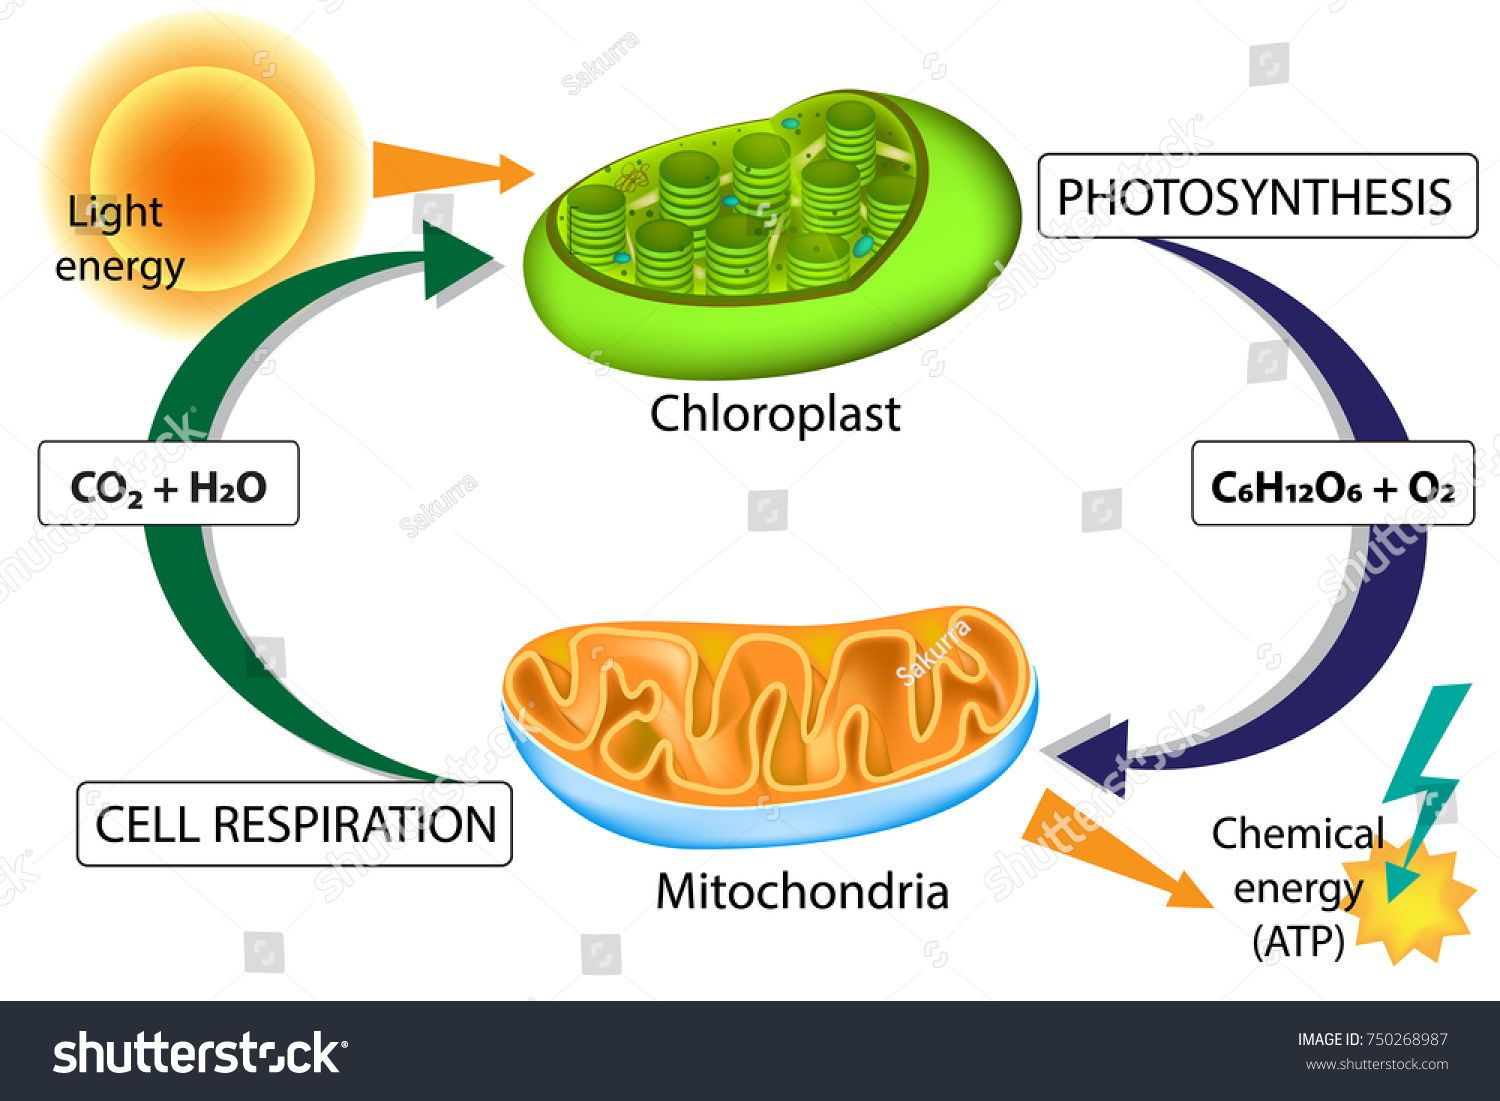 Photosynthesis and Cellular Respiration. Chloroplast and